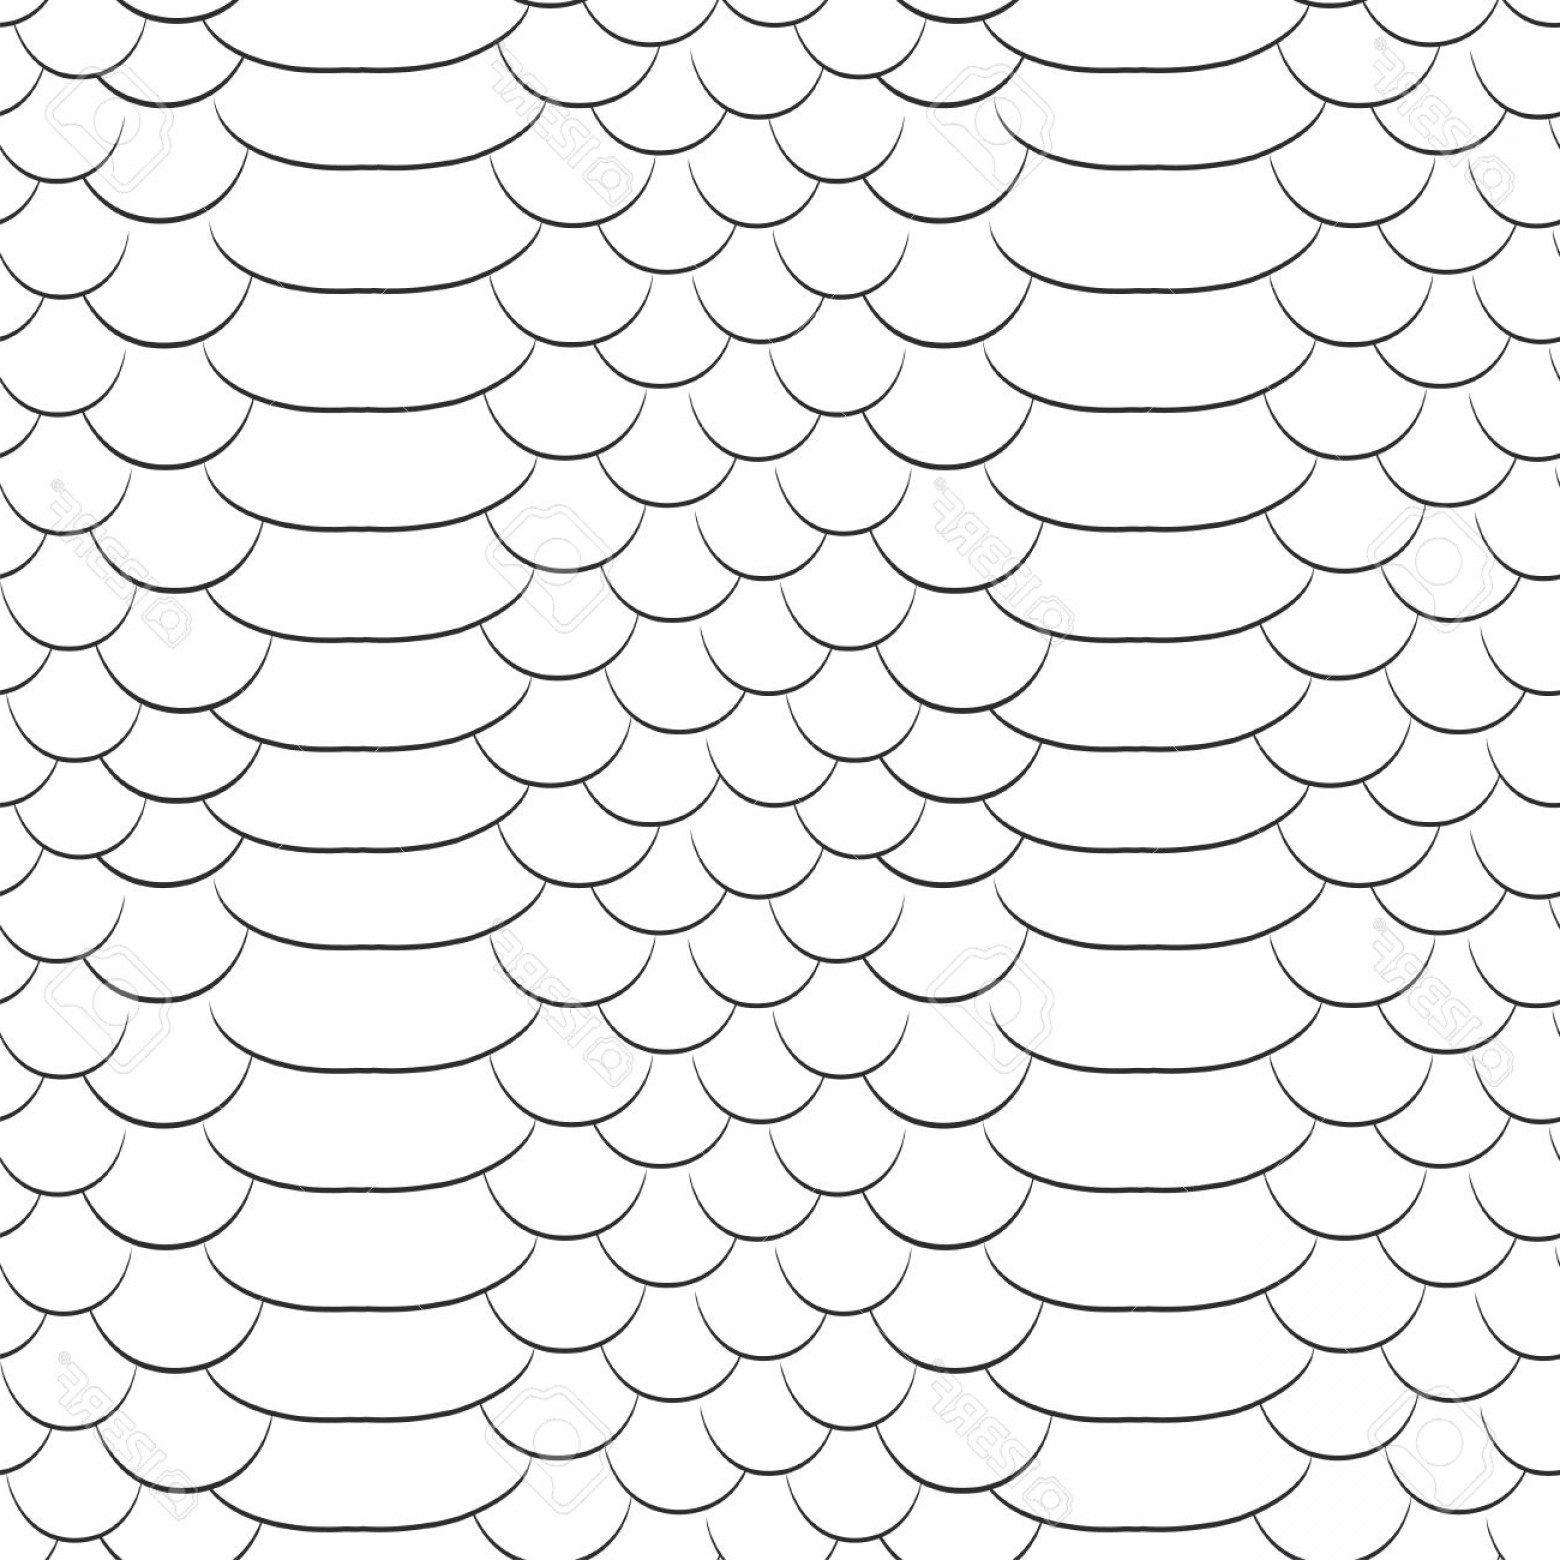 Rattlesnake Skin Vector: Photostock Vector Snake Skin Texture Seamless Pattern Black And White Background Vector Predator Skin Texture